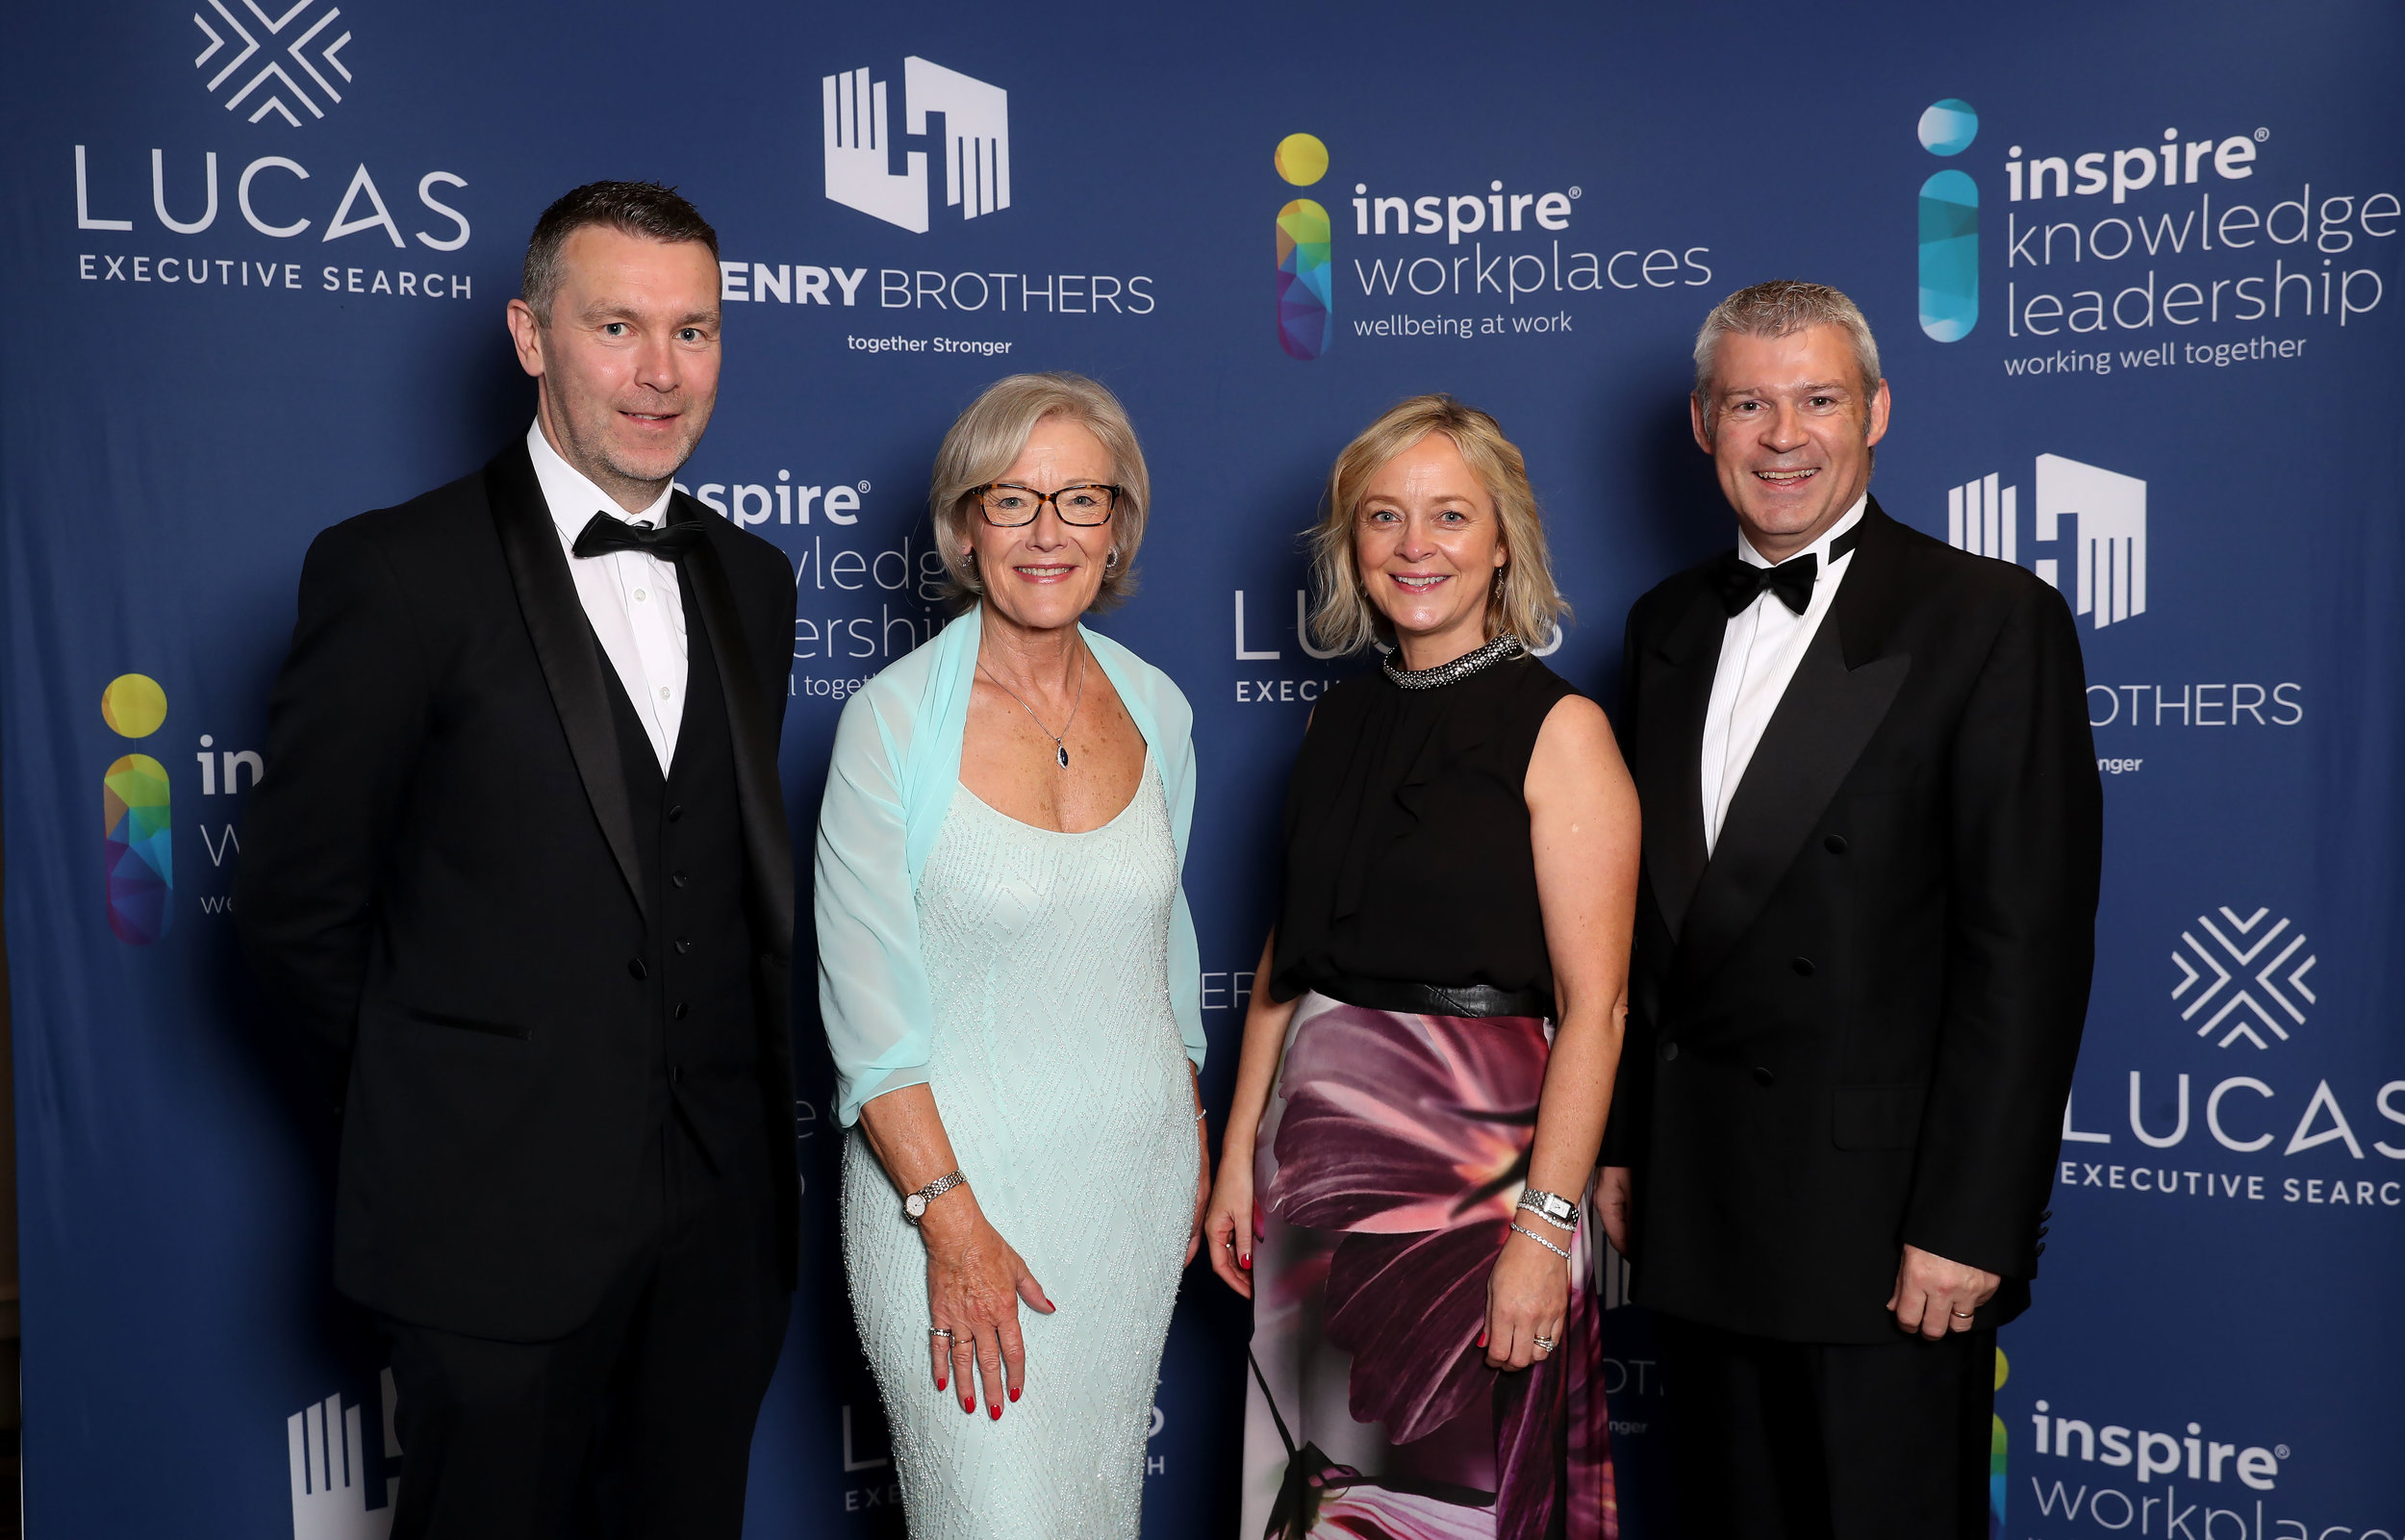 Presenters of the awards GAA Legend, Oisin McConville and former broadcaster Wendy Austin along with Chair of Inspire Finola O'Kane and Director of Professional Services, John Conaghan.